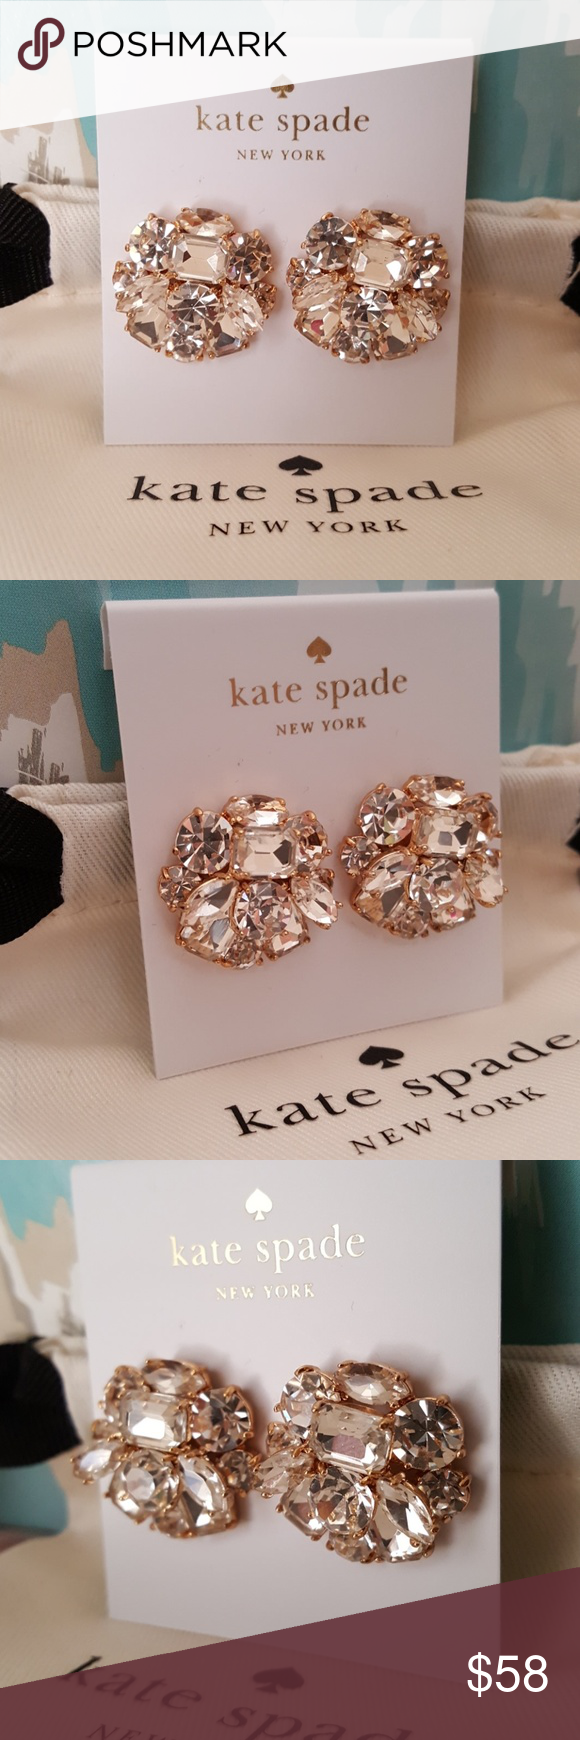 14+ Can you shower with kate spade jewelry info